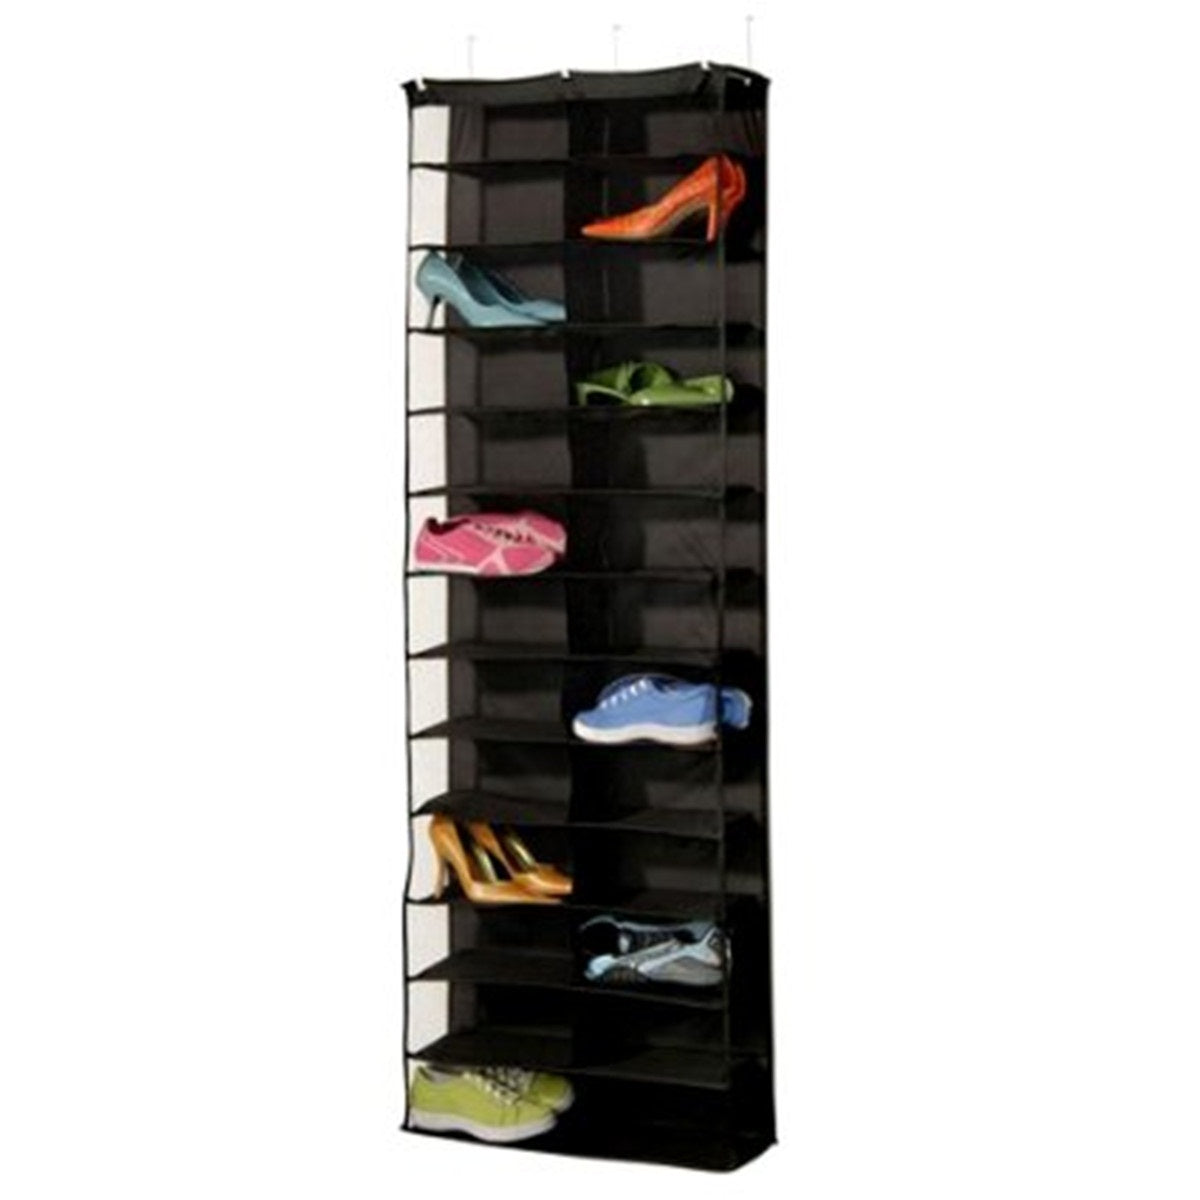 26 Interlayers Door Hanging Shelf Shoe Storage Organizer Bag